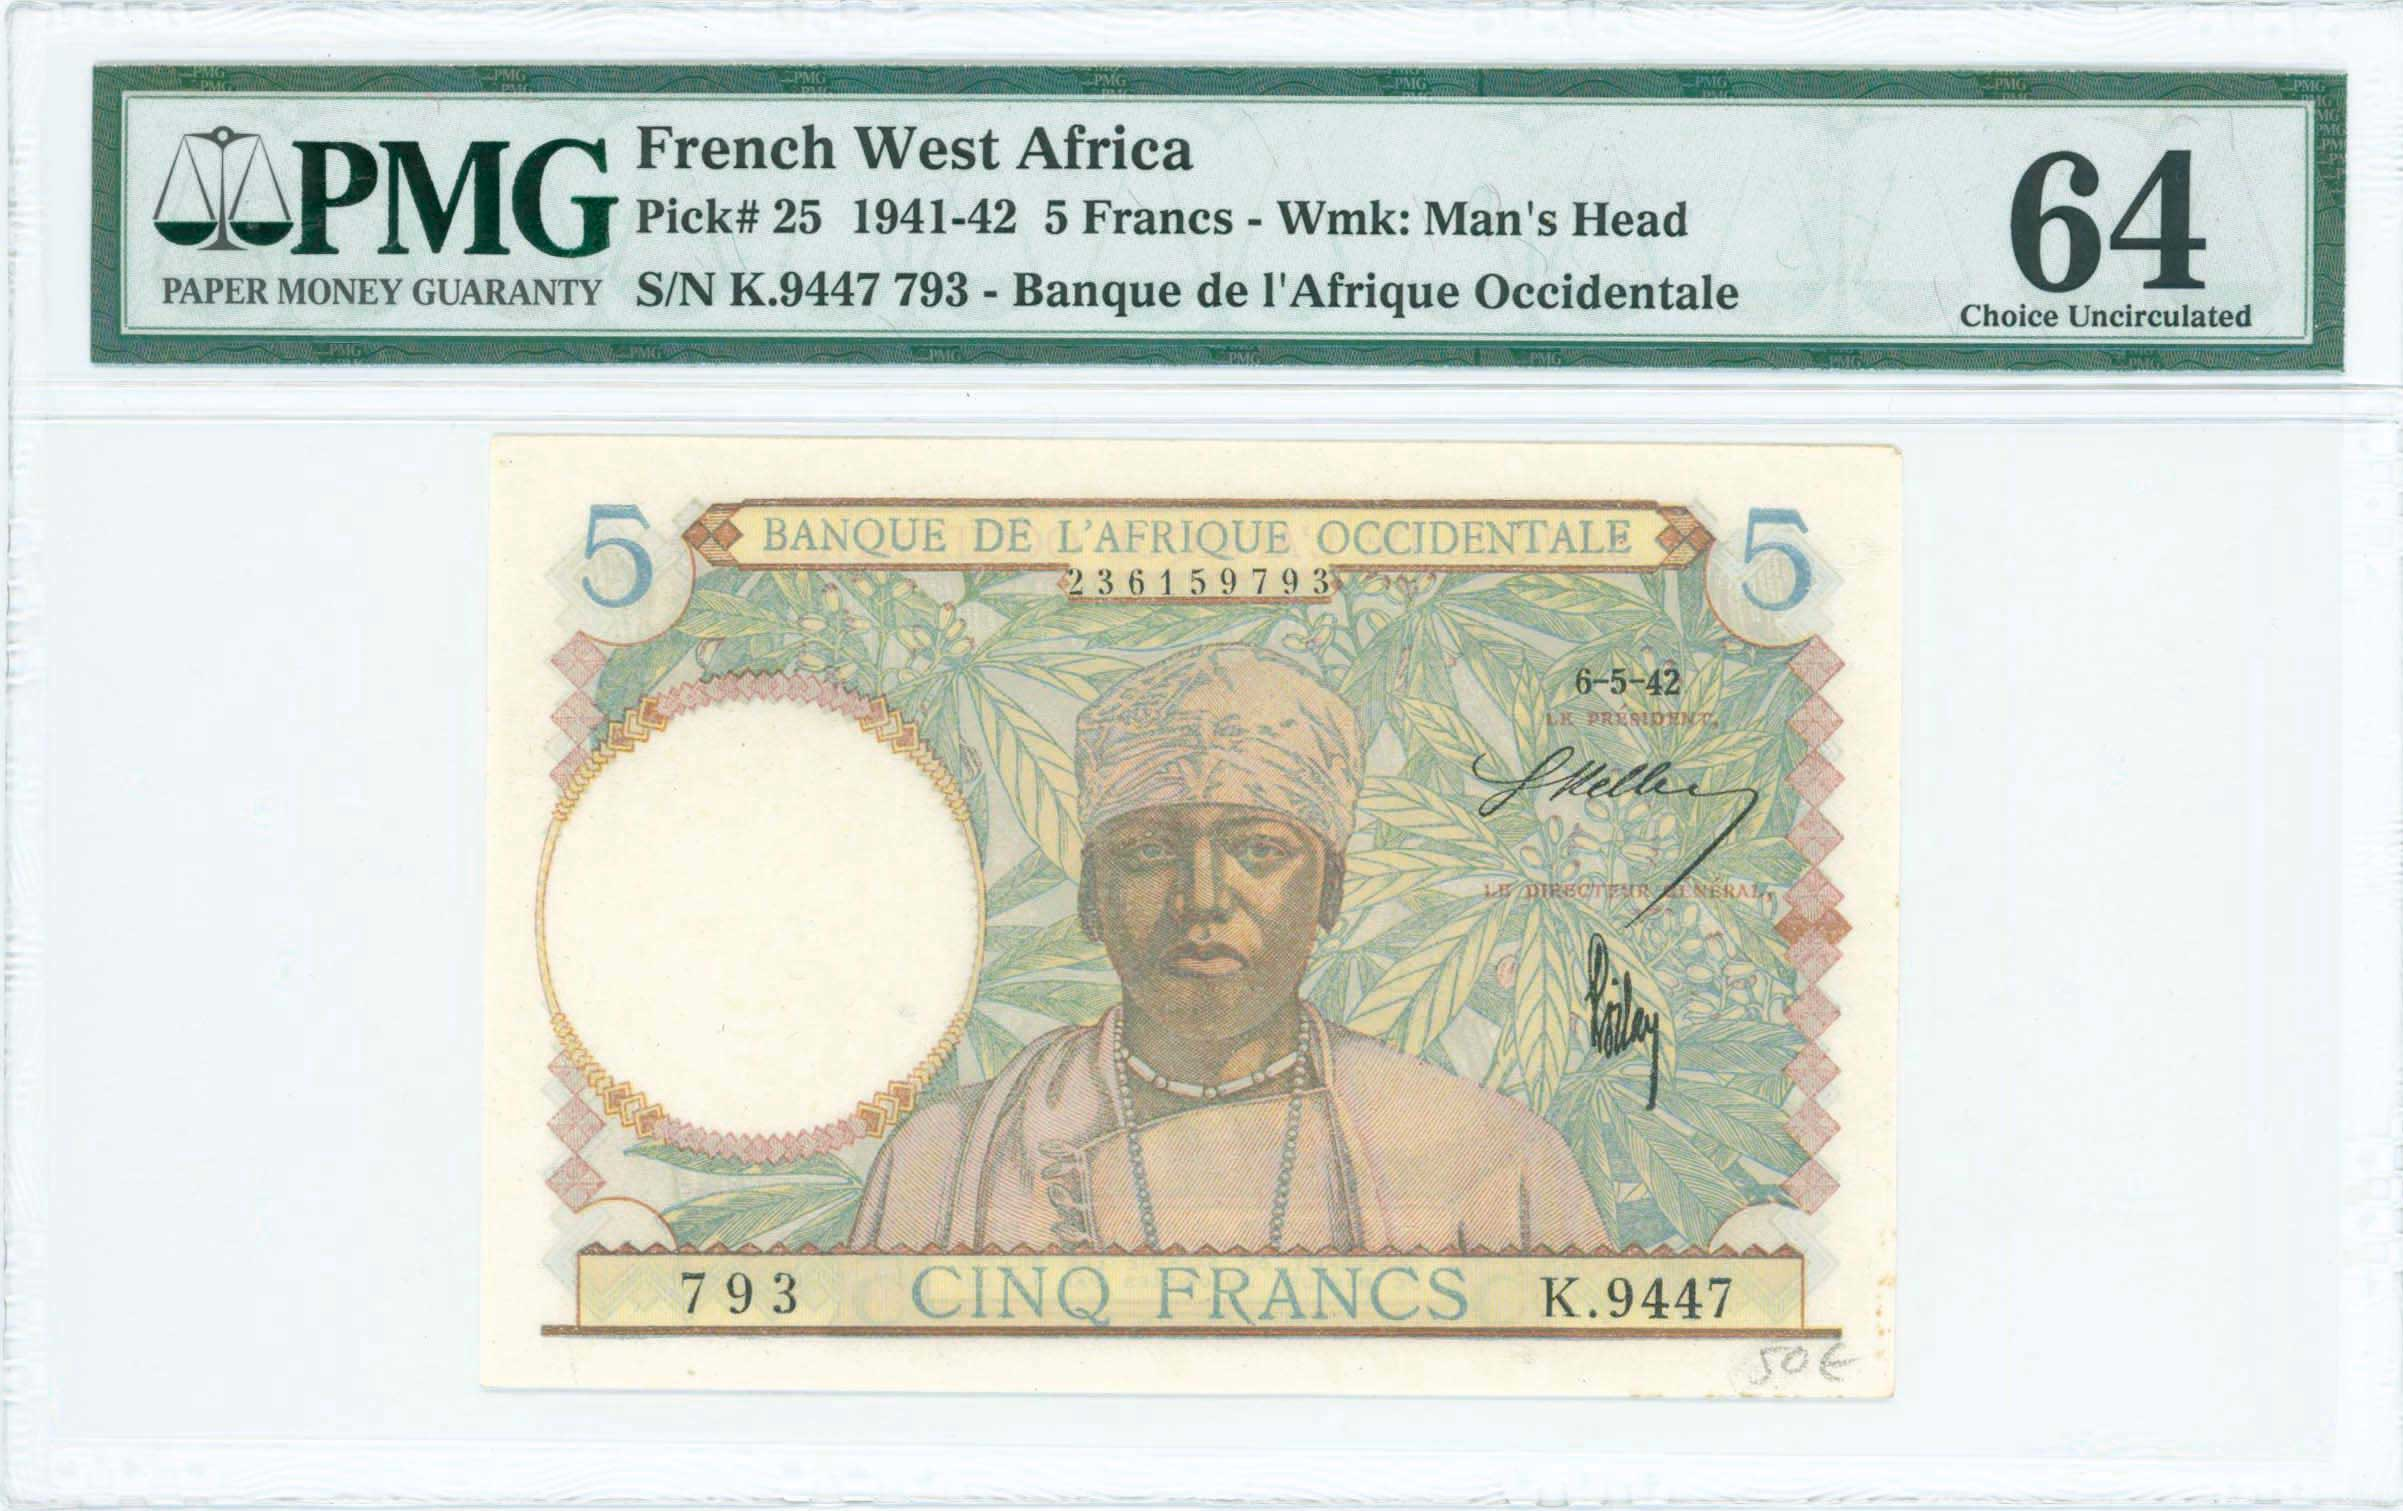 Lot 7363 - -  PAPER MONEY - BANKNOTES BANKNOTES OF AFRICAN COUNTRIES -  A. Karamitsos Public & Live Internet Auction 671 (Part B)